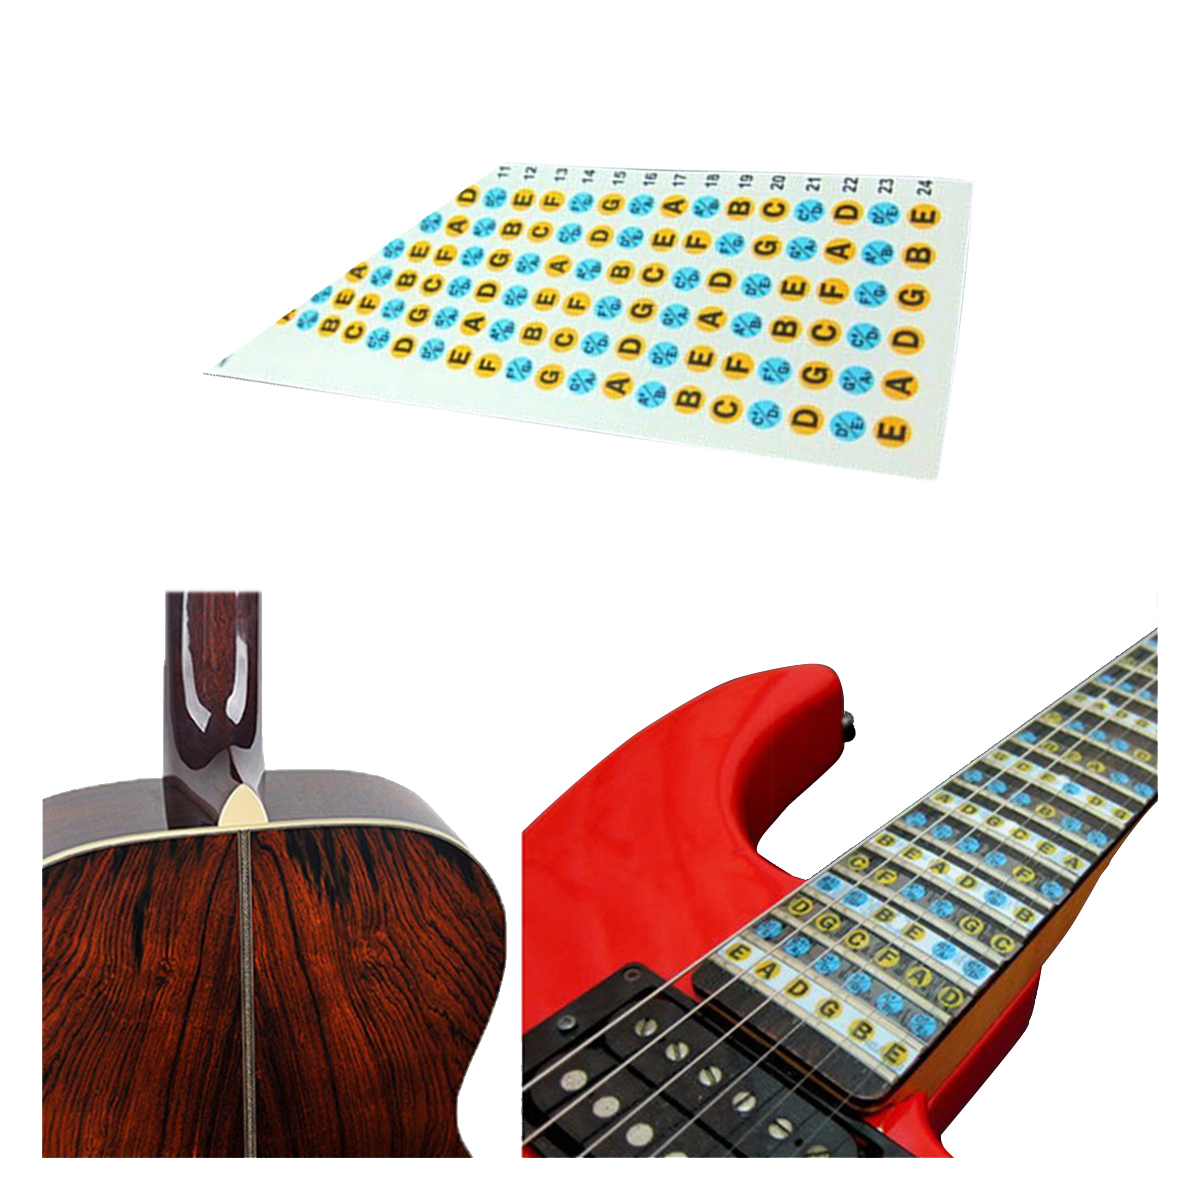 Fast Deliver New Guitar Fretboard Note Decals Fingerboard Frets Map Sticker For Beginner Learner Practice Sports & Entertainment